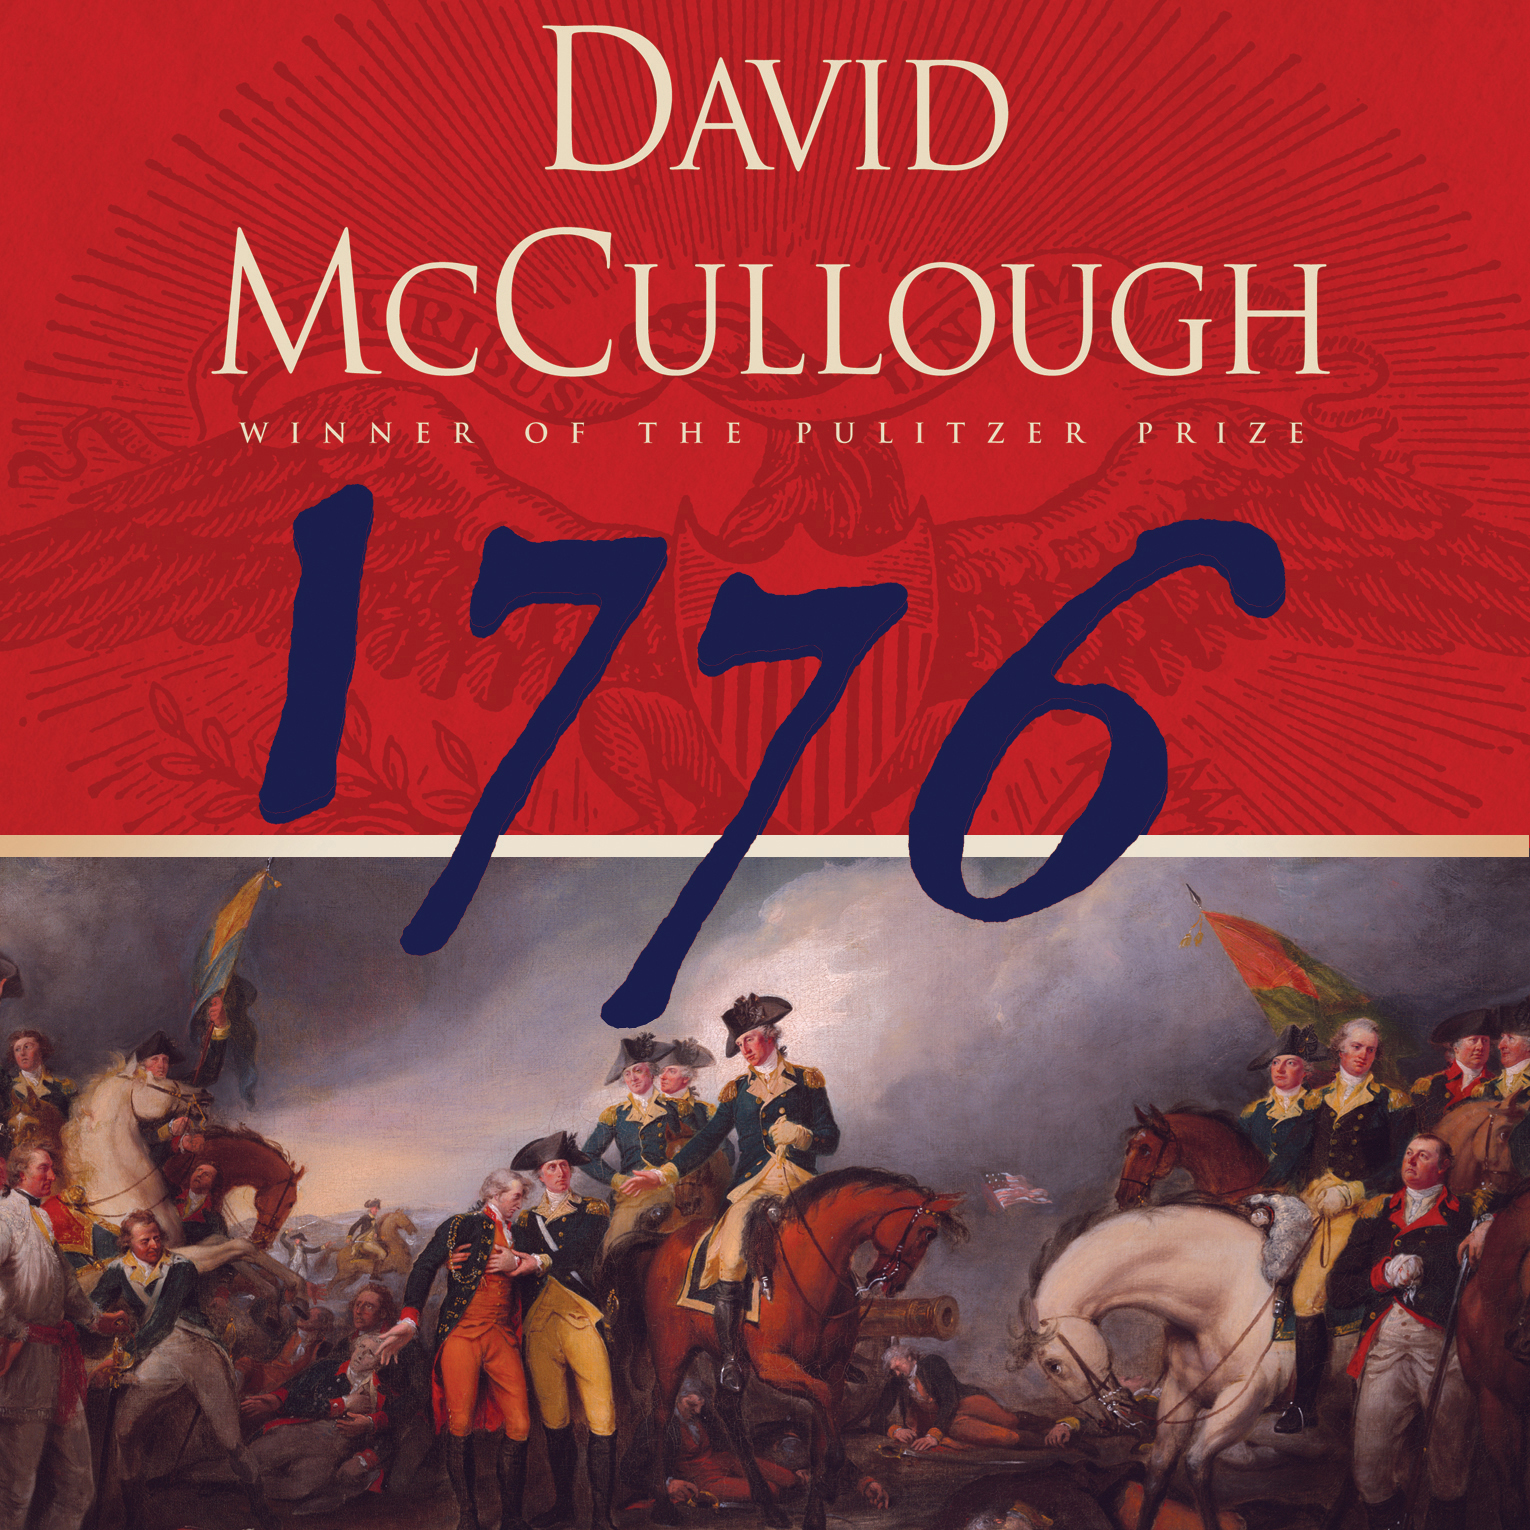 thesis of 1776 Search results for: 1776 david mccullough thesis proposal 1776 was probably most likely probably most likely probably the most fast-paced, page turning nonfiction works i've ever read.